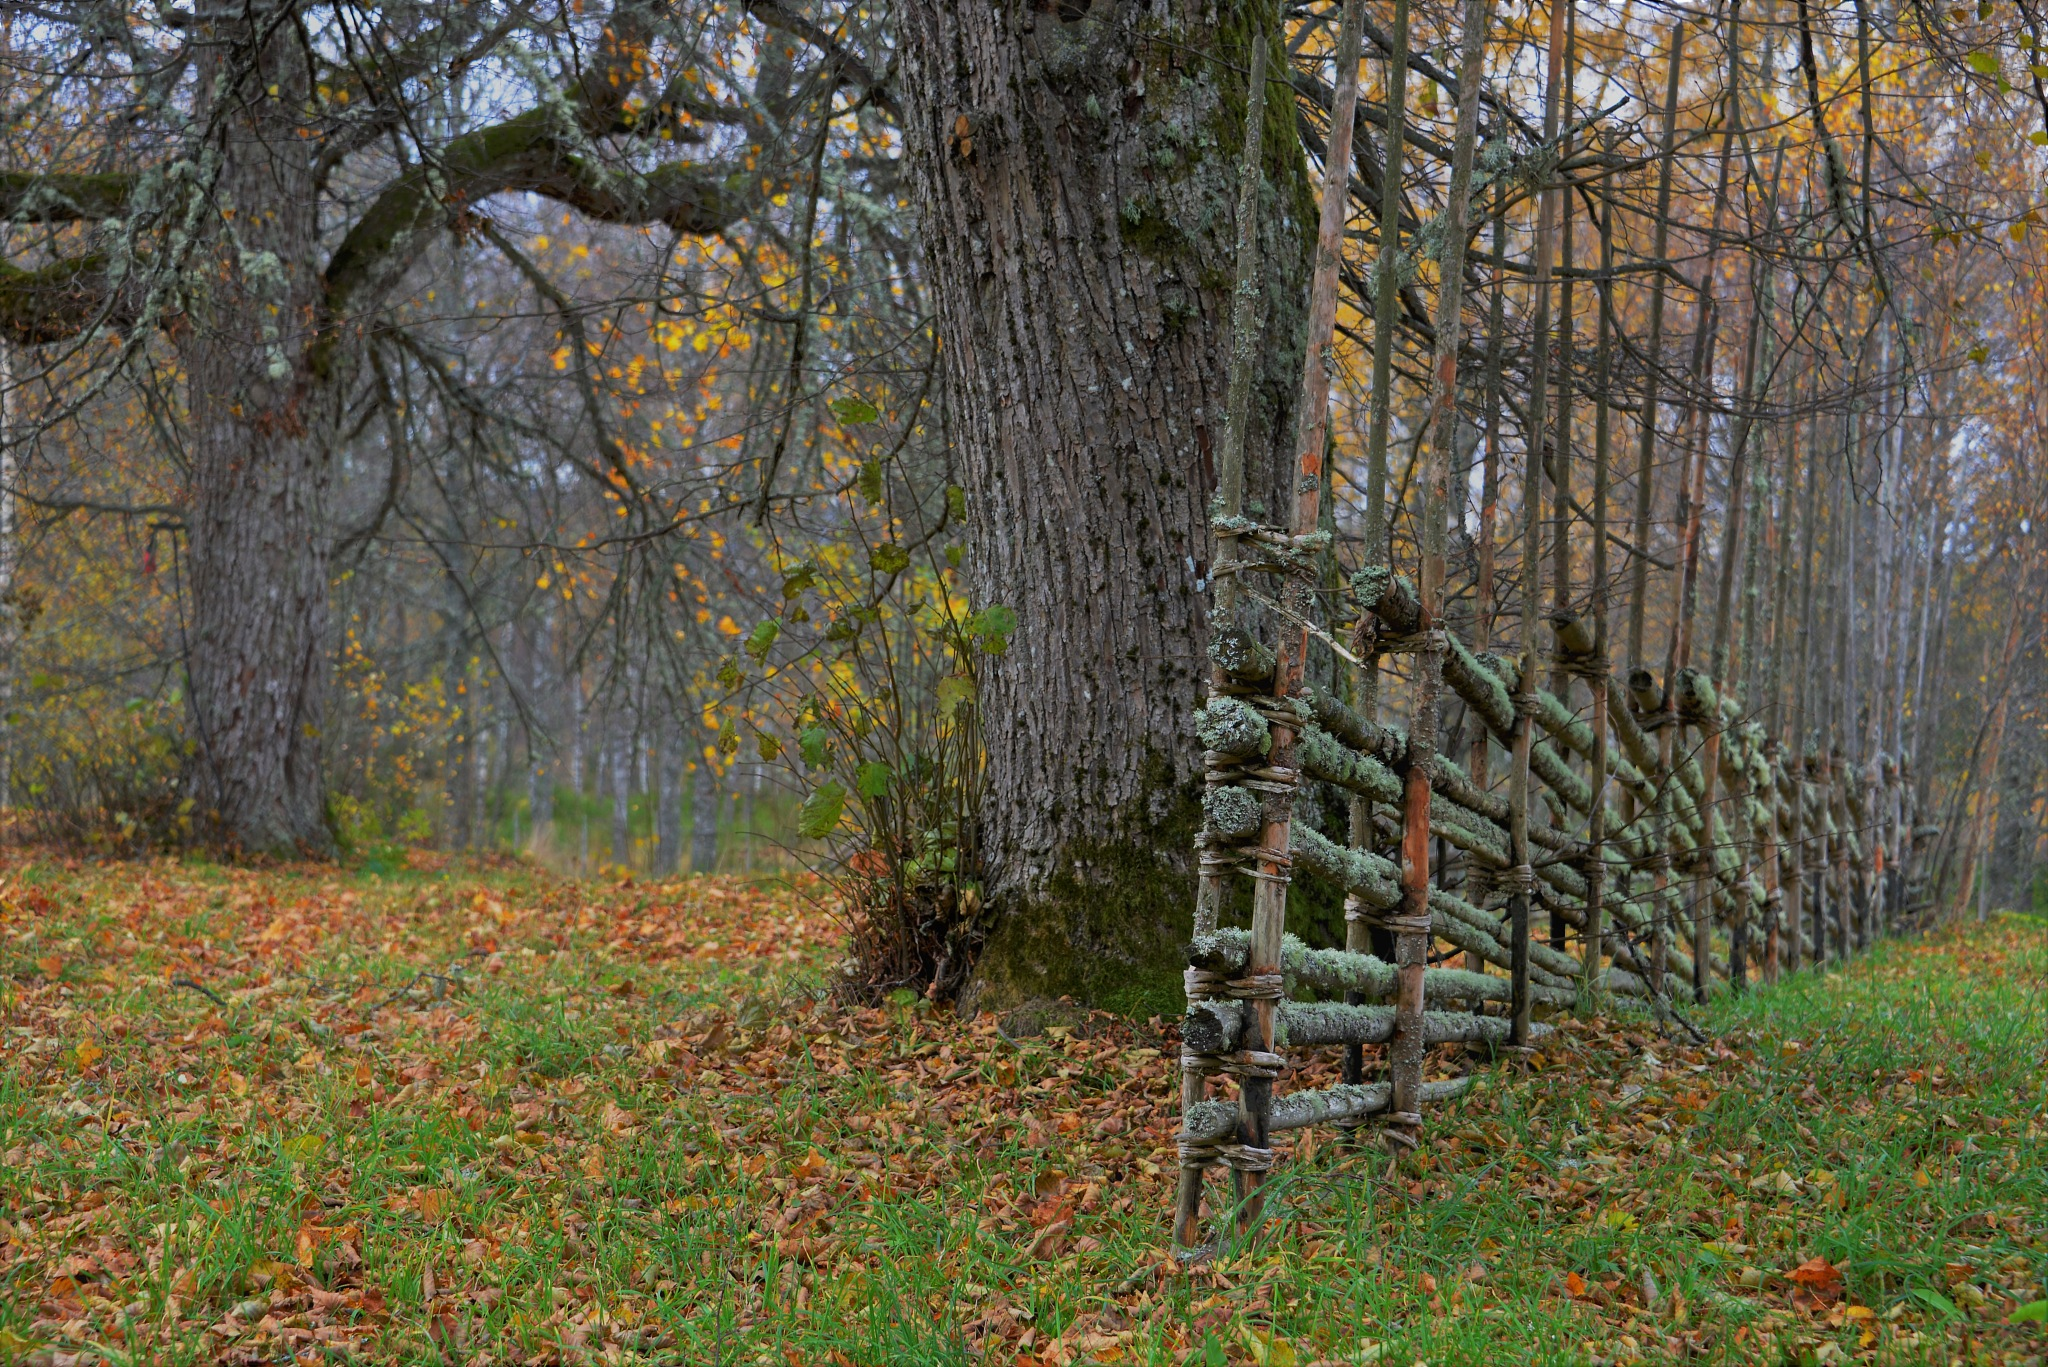 Autumn at the old house by tina.tomasson